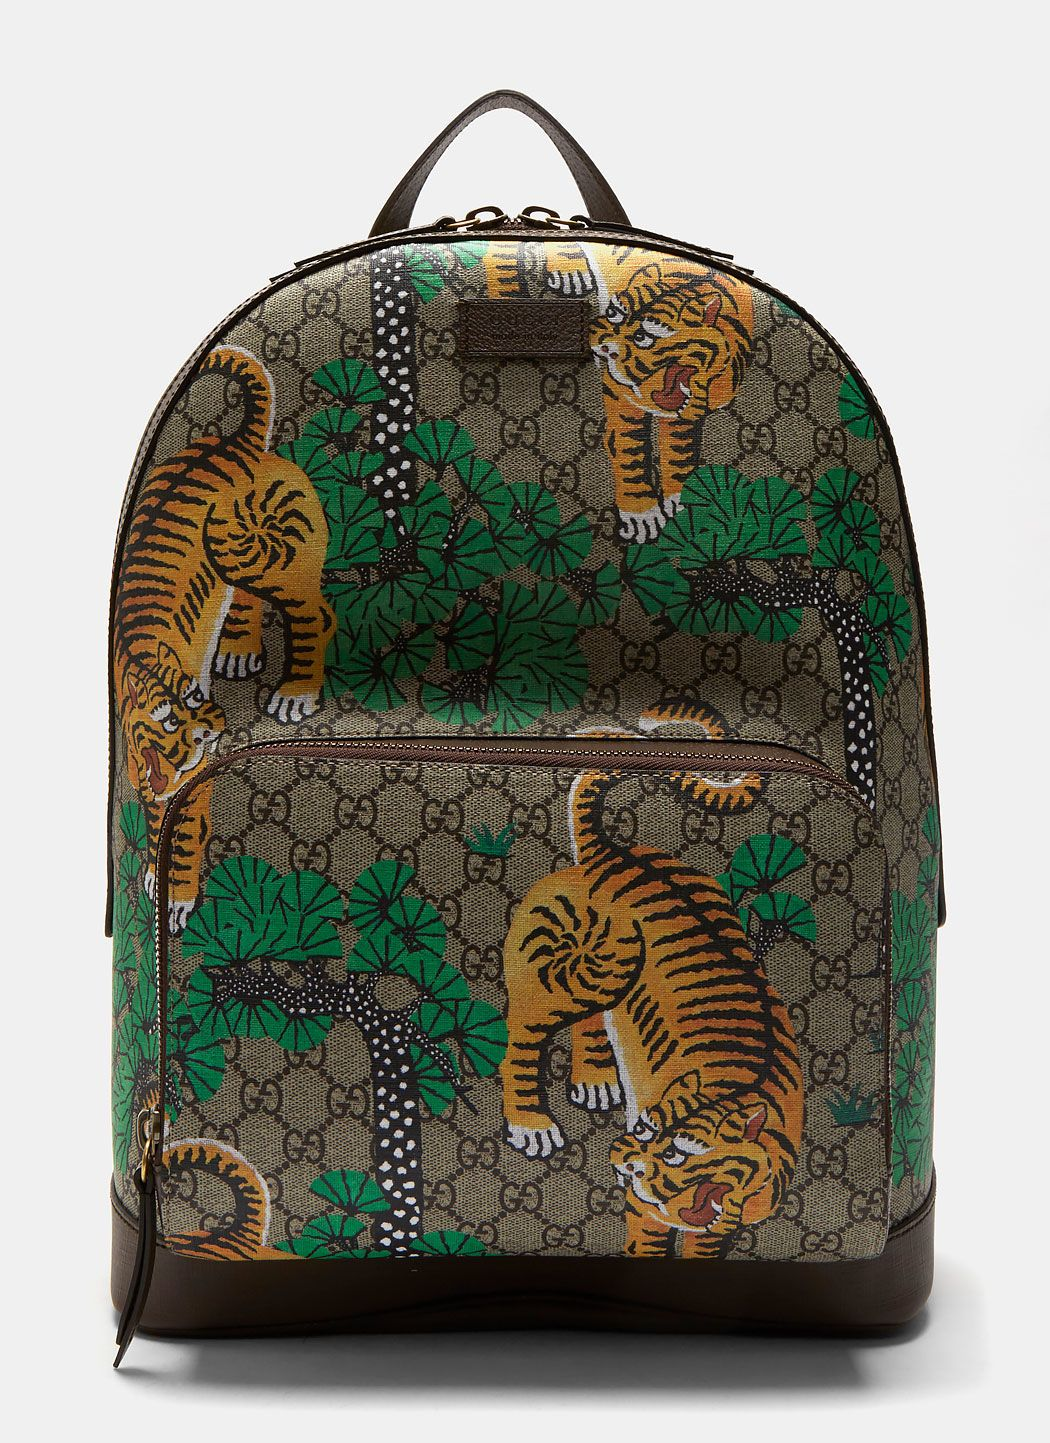 3c6a2fc2917 GUCCI Men S Zaino Bengal Tiger Gg Print Backpack In Brown.  gucci  bags   leather  canvas  backpacks